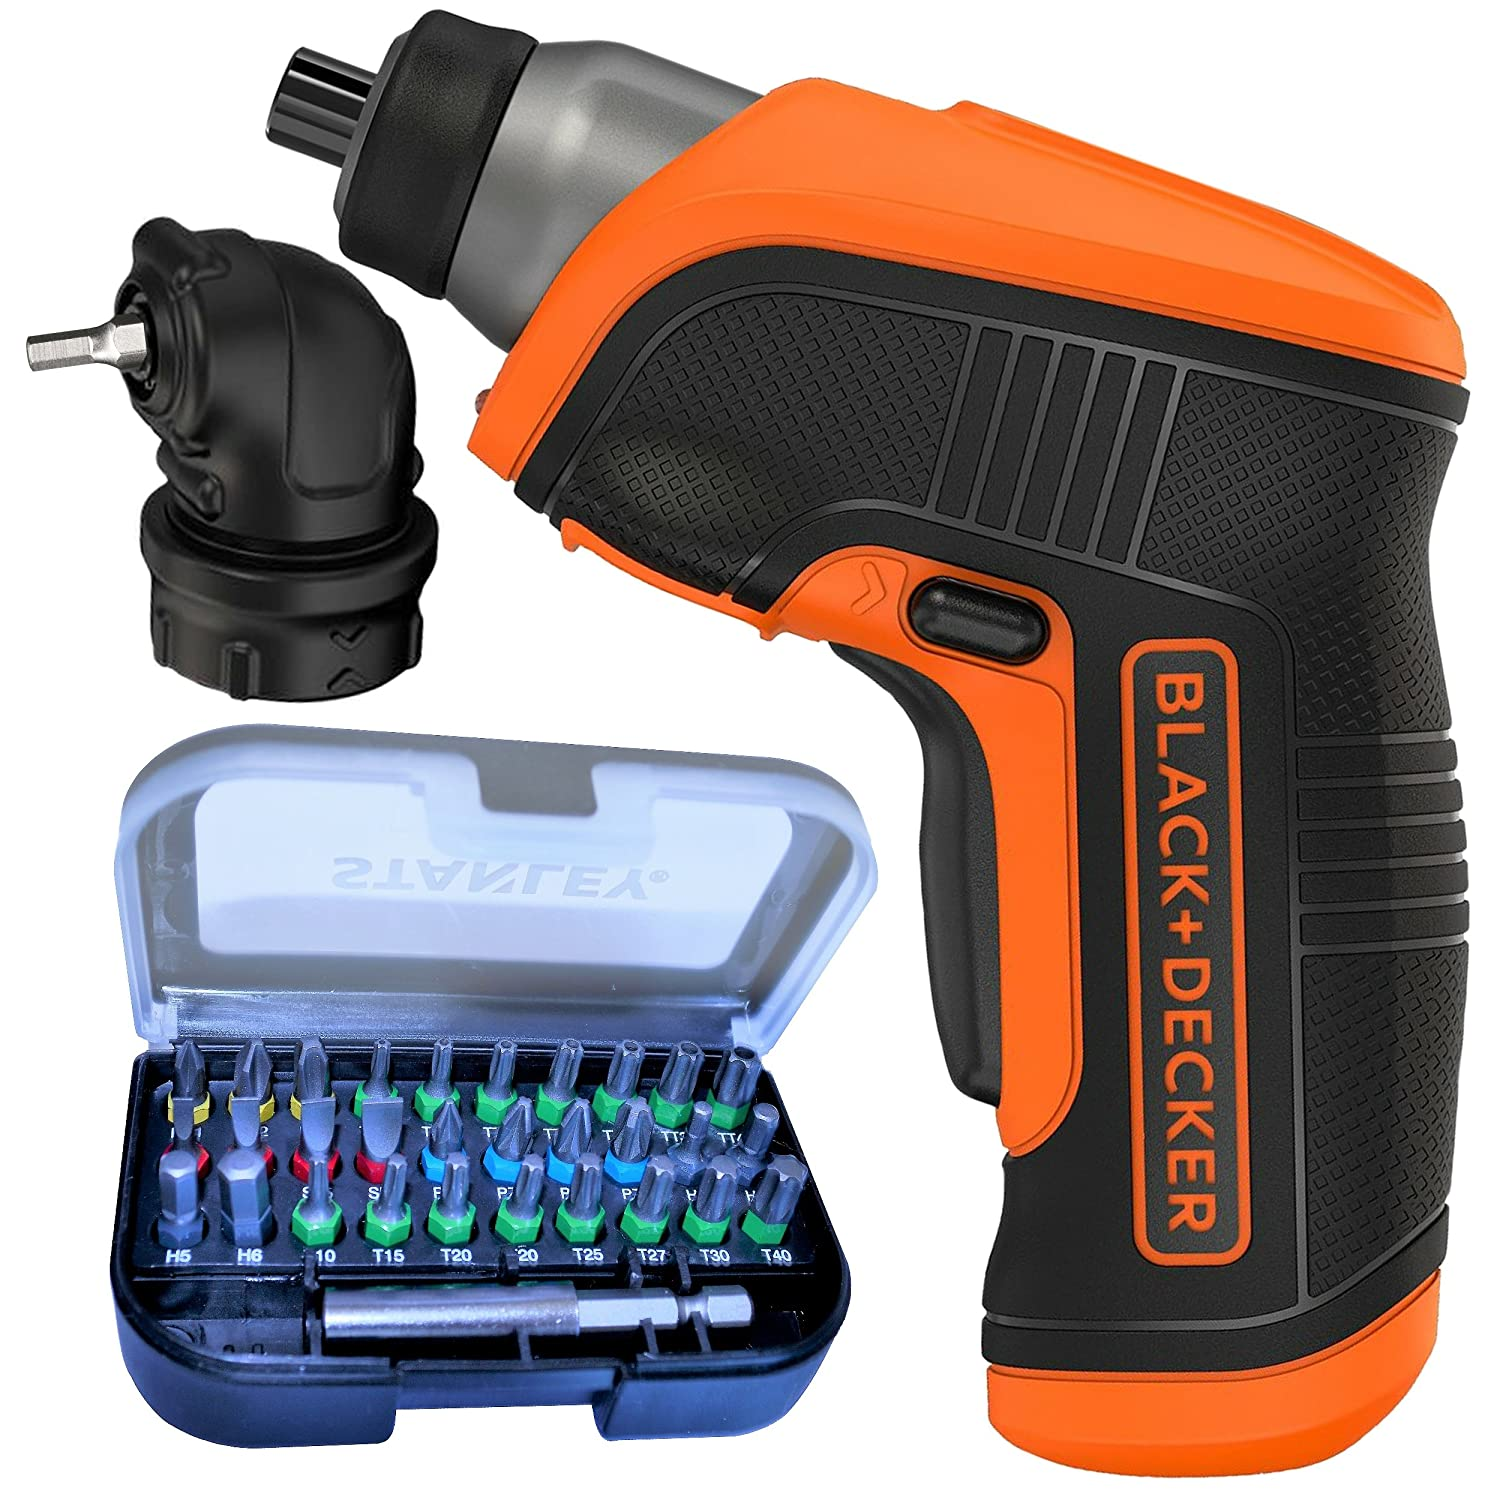 Black & Decker Compact Cordless Rechargeable Screwdriver with LED Light Includes Right Angle Attachment and 32 Screw Bits